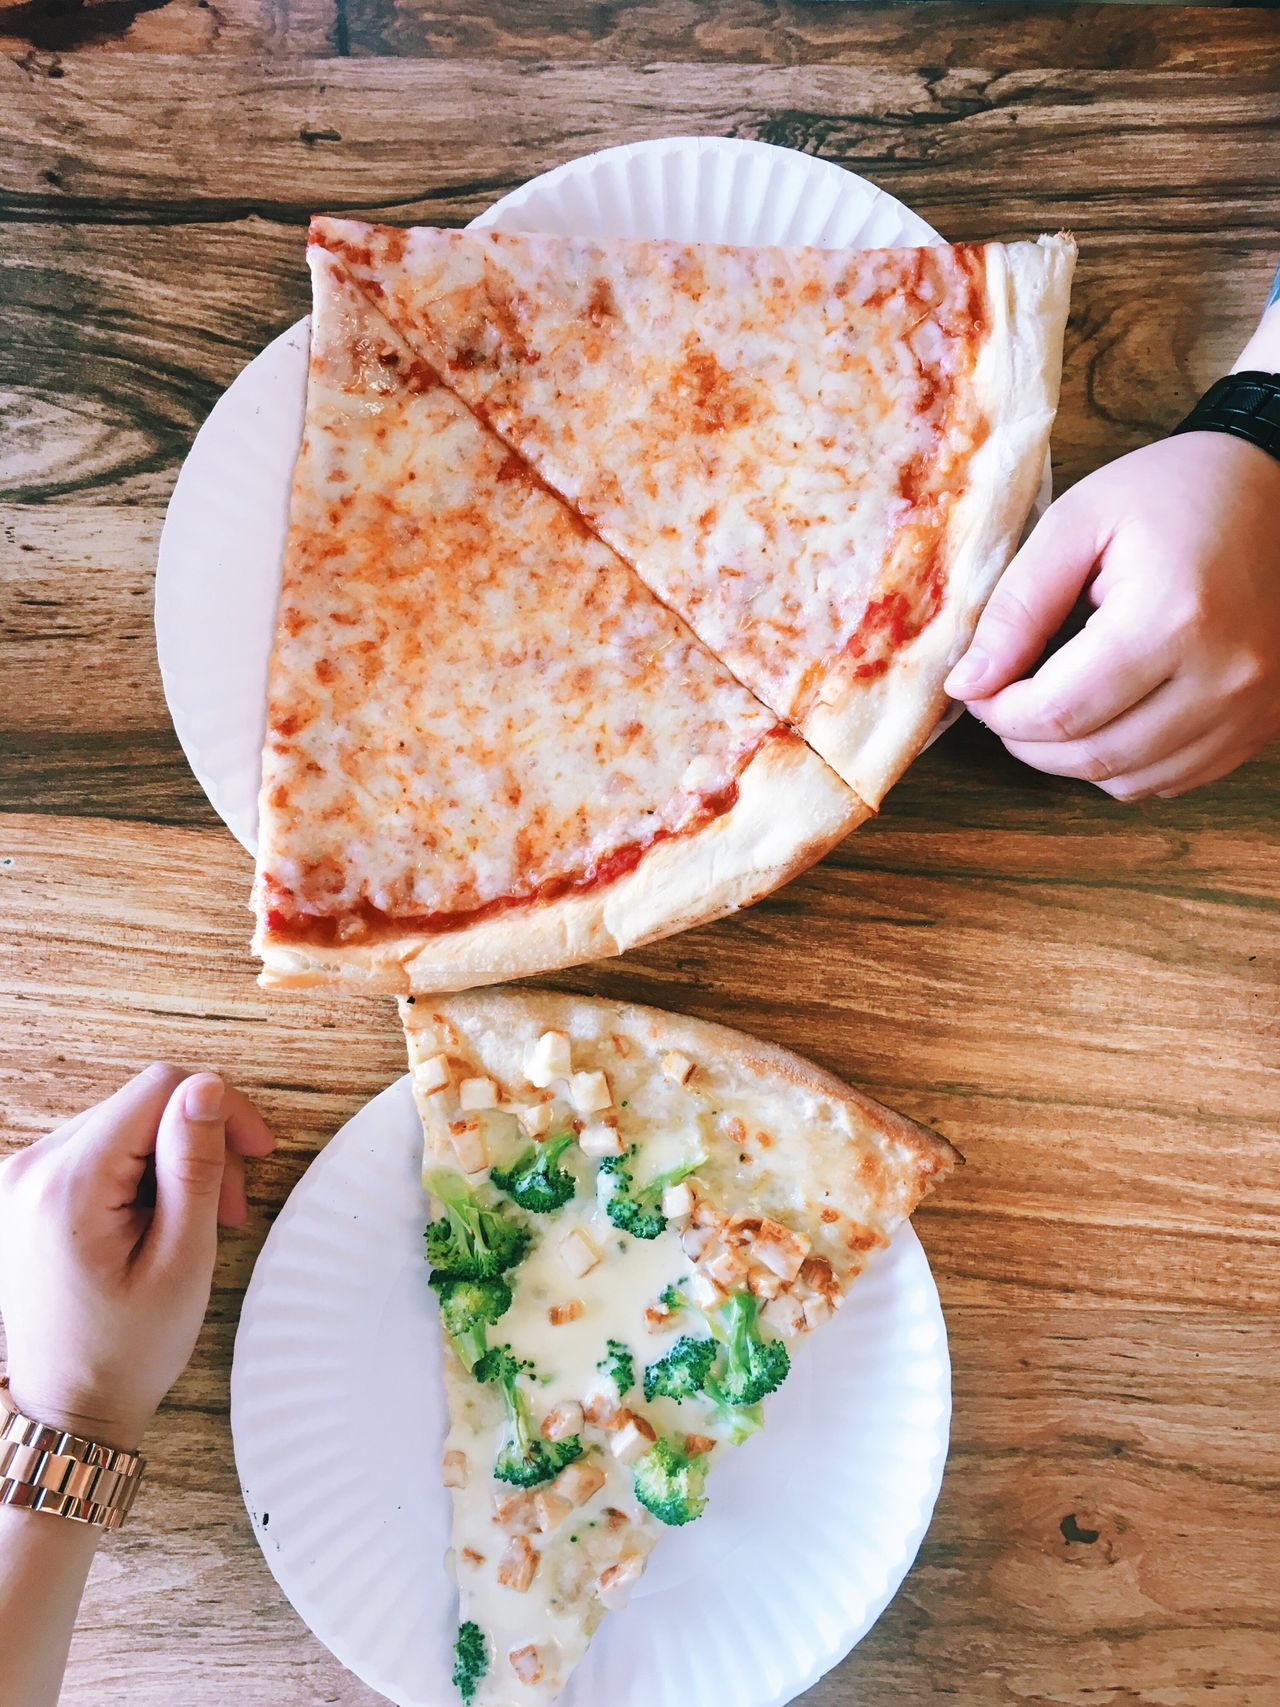 Food Pizza Hands Unrecognizable Person Part Of Food And Drink Food Indoors  Freshness Person Table Holding Plate Close-up Ready-to-eat Person Meal Wooden Serving Size Personal Perspective